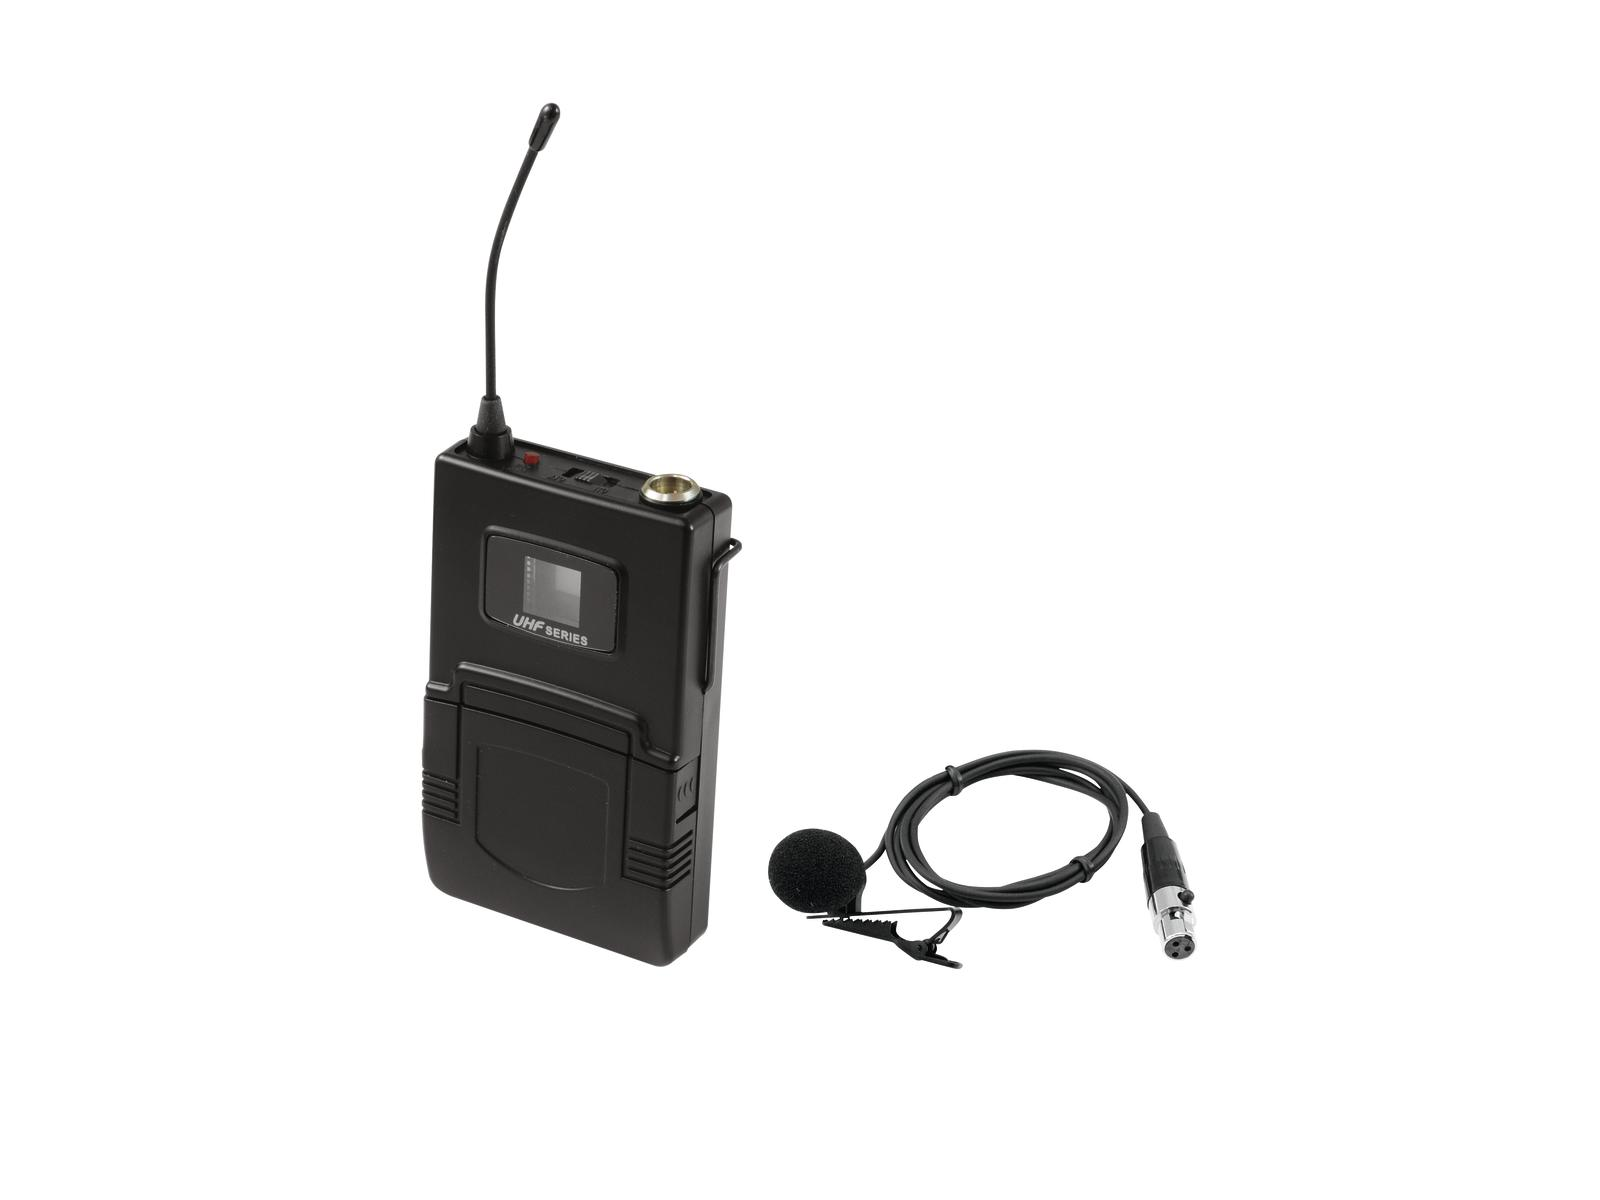 OMNITRONIC UHF-502 Bodypack incl. 863-865MHz, Lavalier (CH rosso